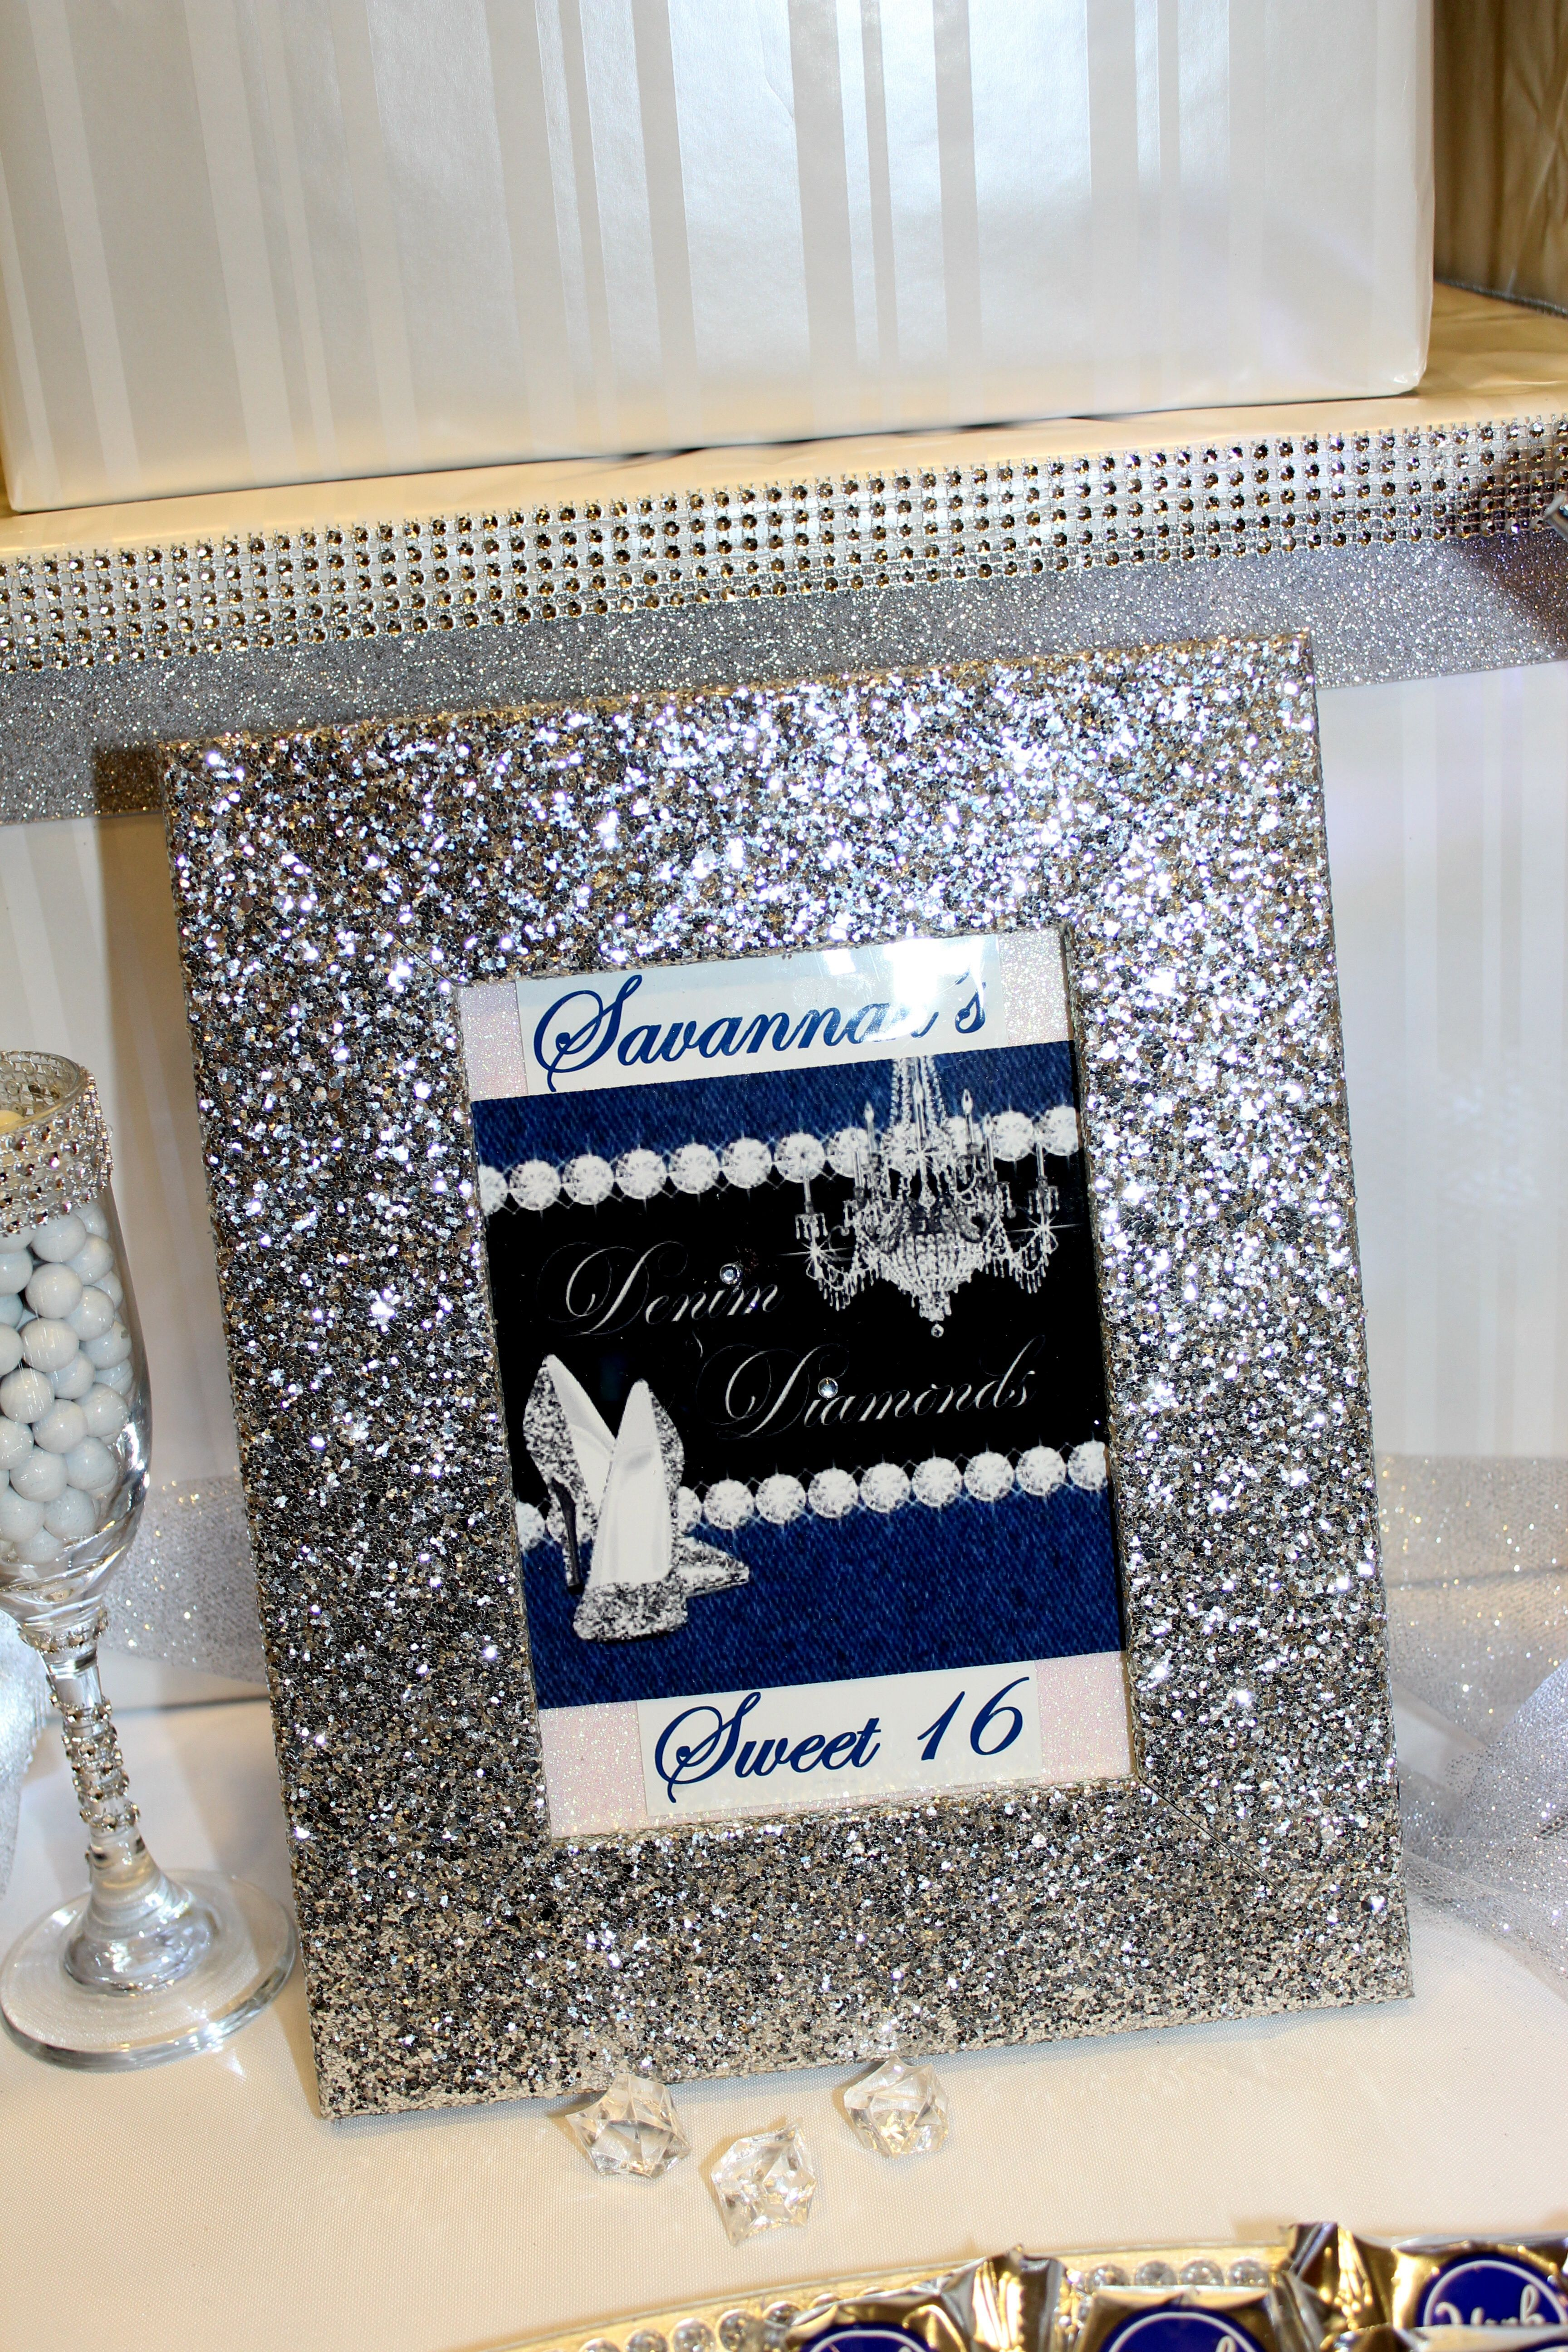 Sweet amp sparkly wedding candy buffet pictures to pin on pinterest - Denim Diamonds Sweet 16 Candy Table